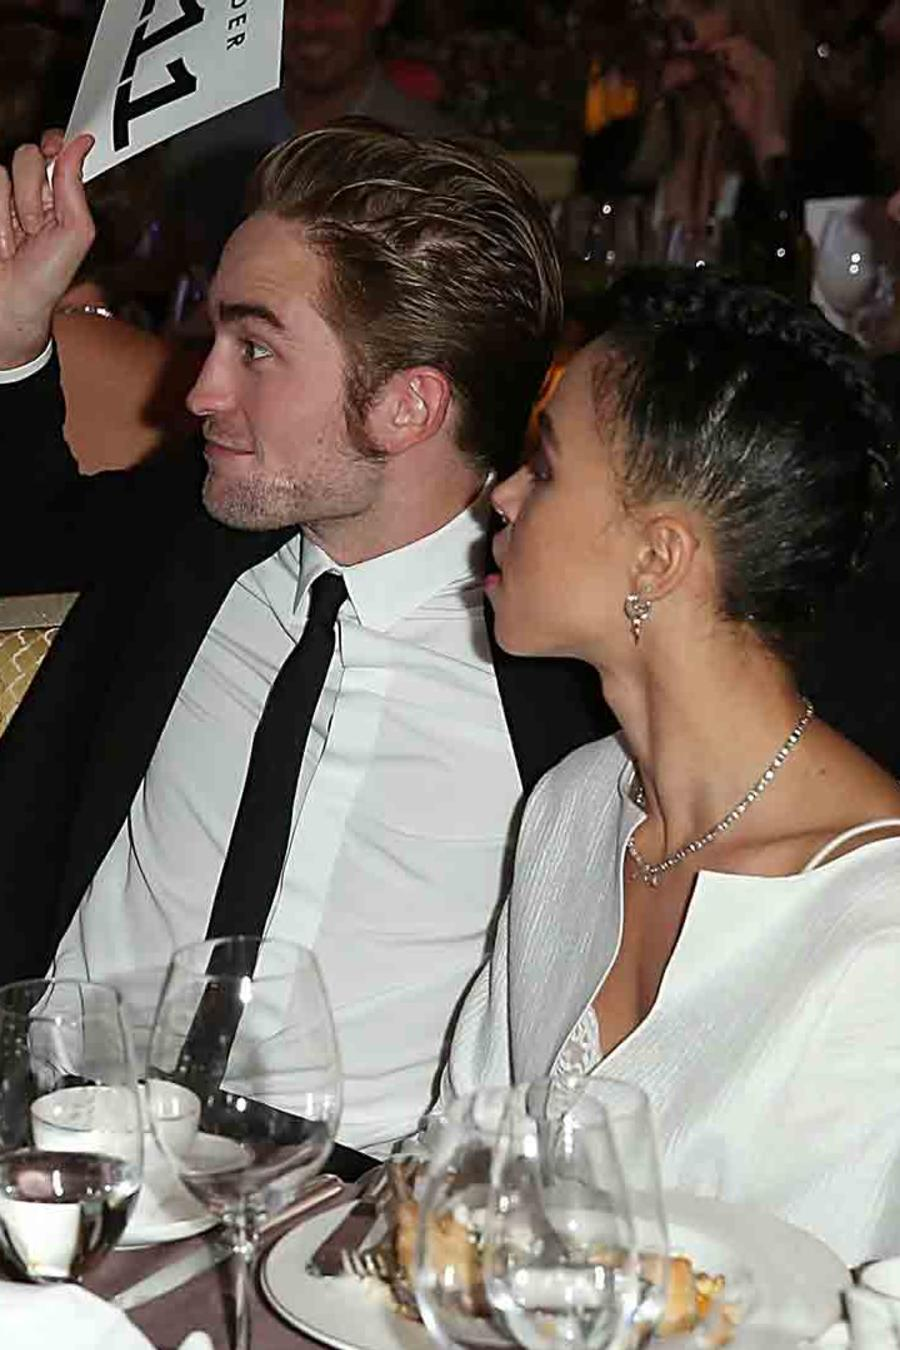 Robert Pattinson Leans on Katy Perry Following His Breakup with FKA Twigs